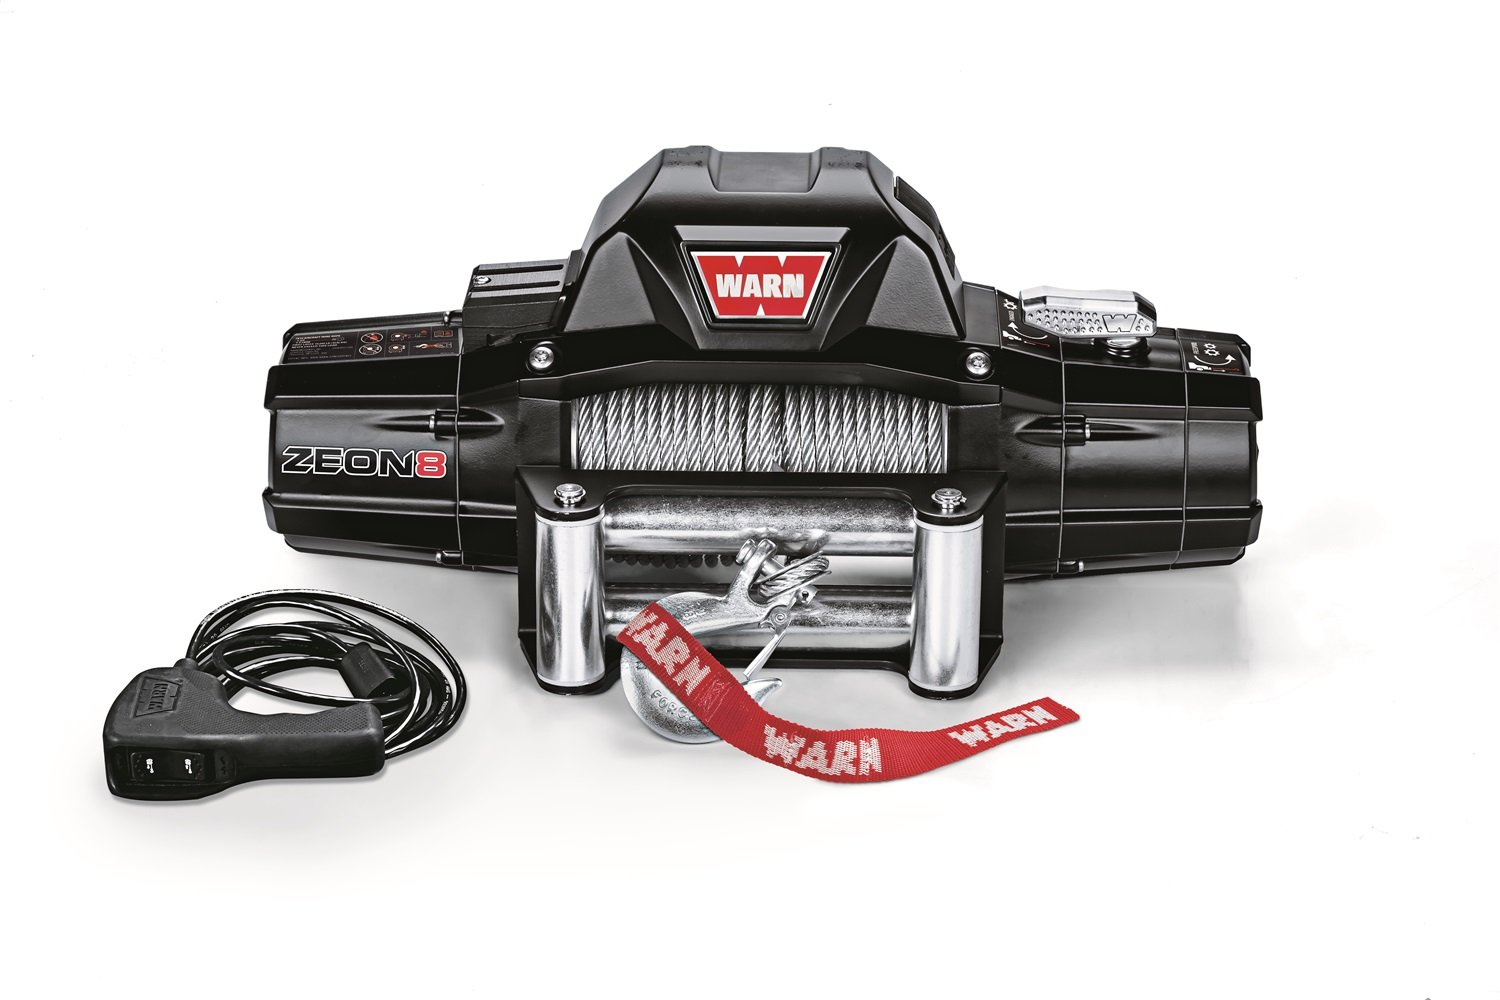 8000 lb Warn 89305 ZEON 8-S Winch with Synthetic Rope Capacity